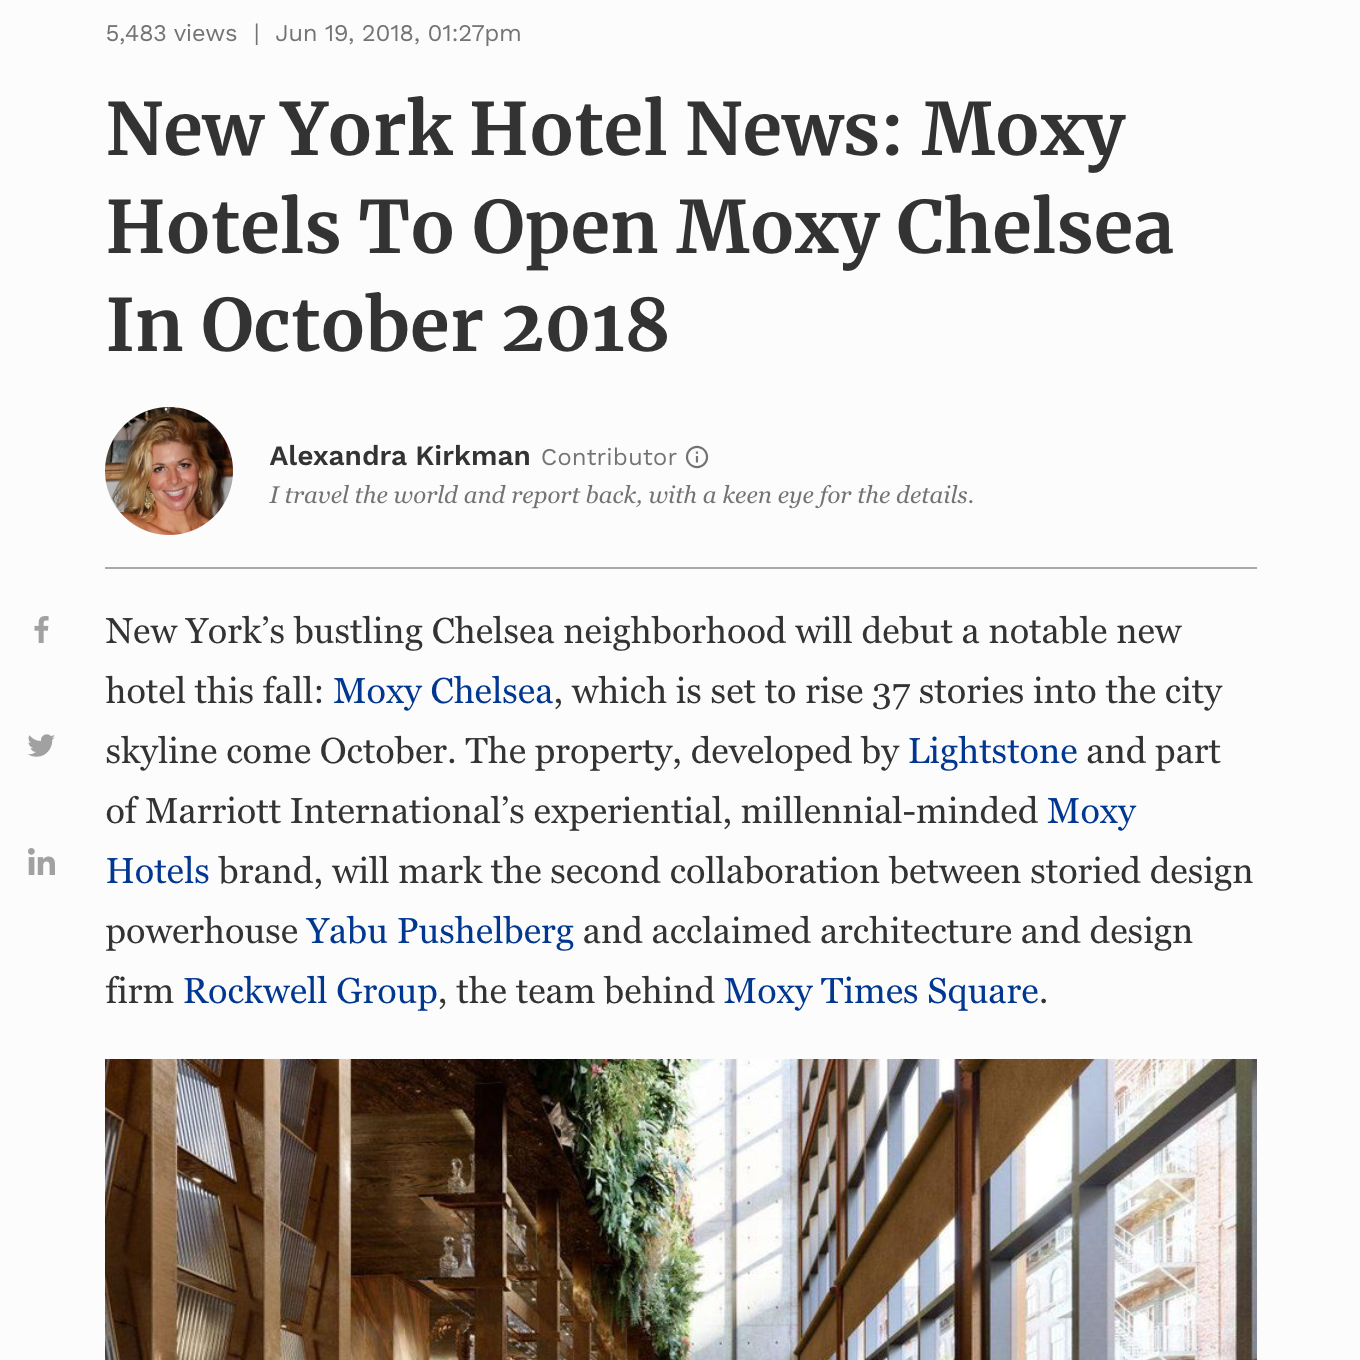 Moxy Chelsea article in Forbes